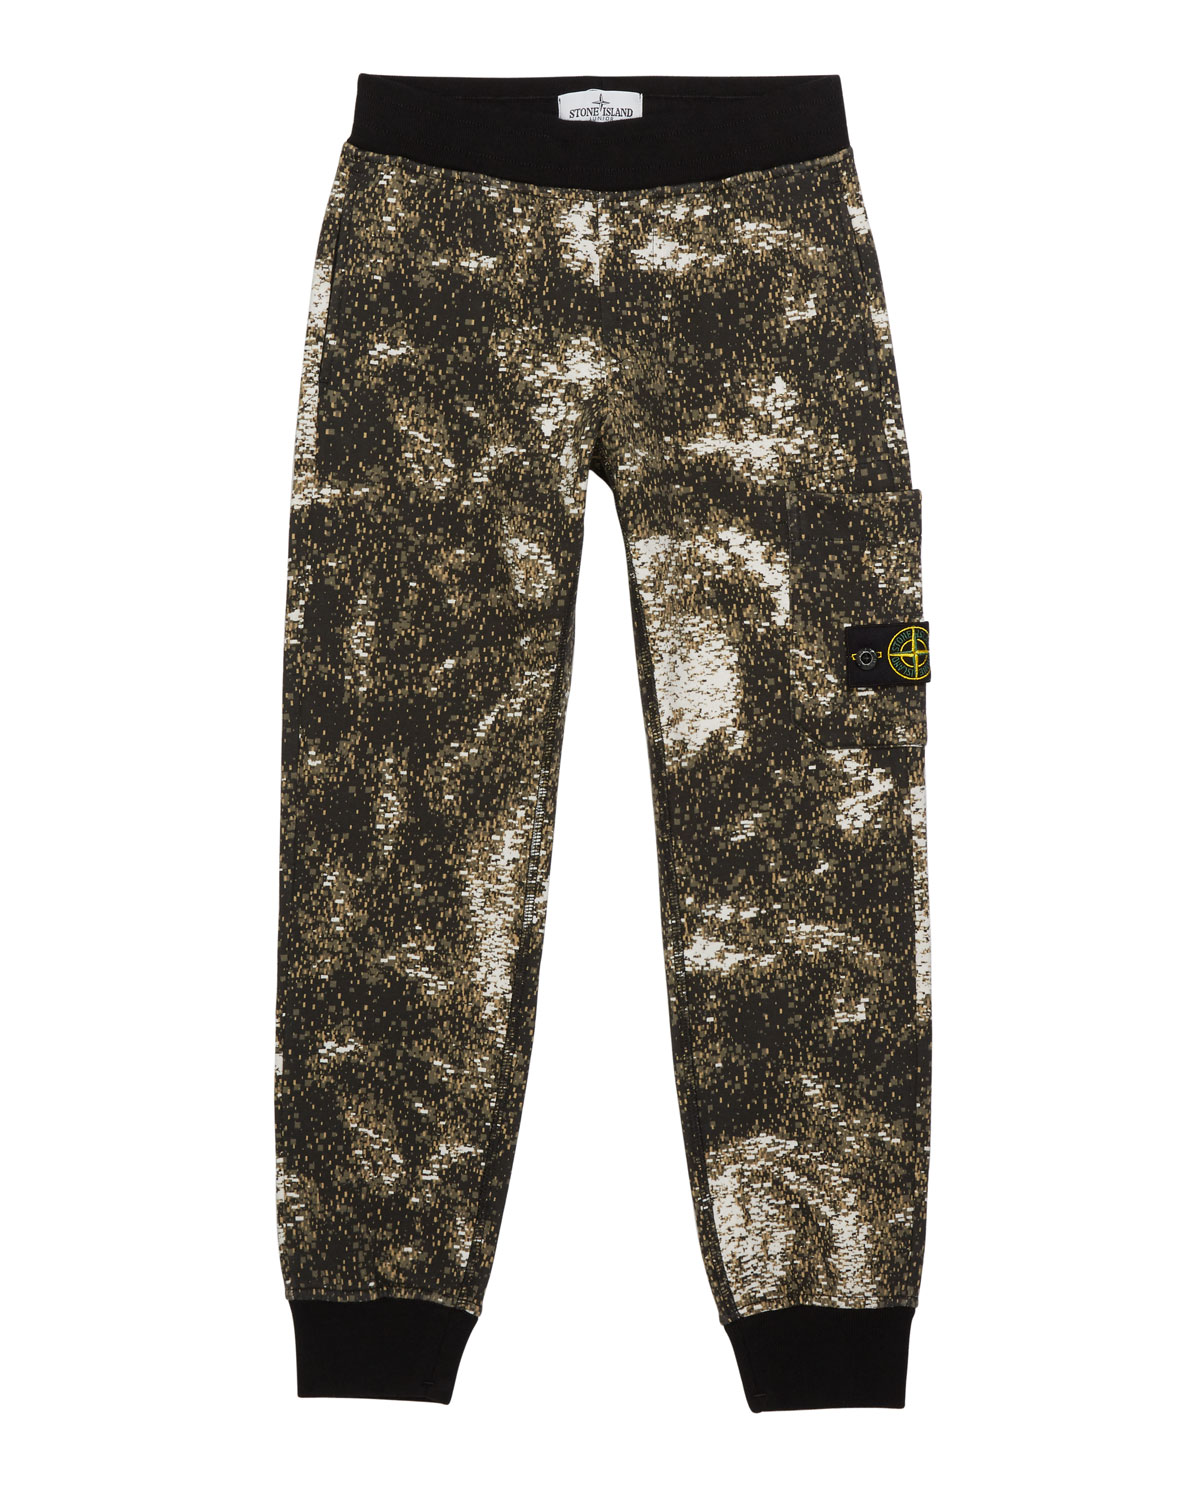 Stone Island Boy's Digital Space Print Fleece Jogger Pants, Size 2-6